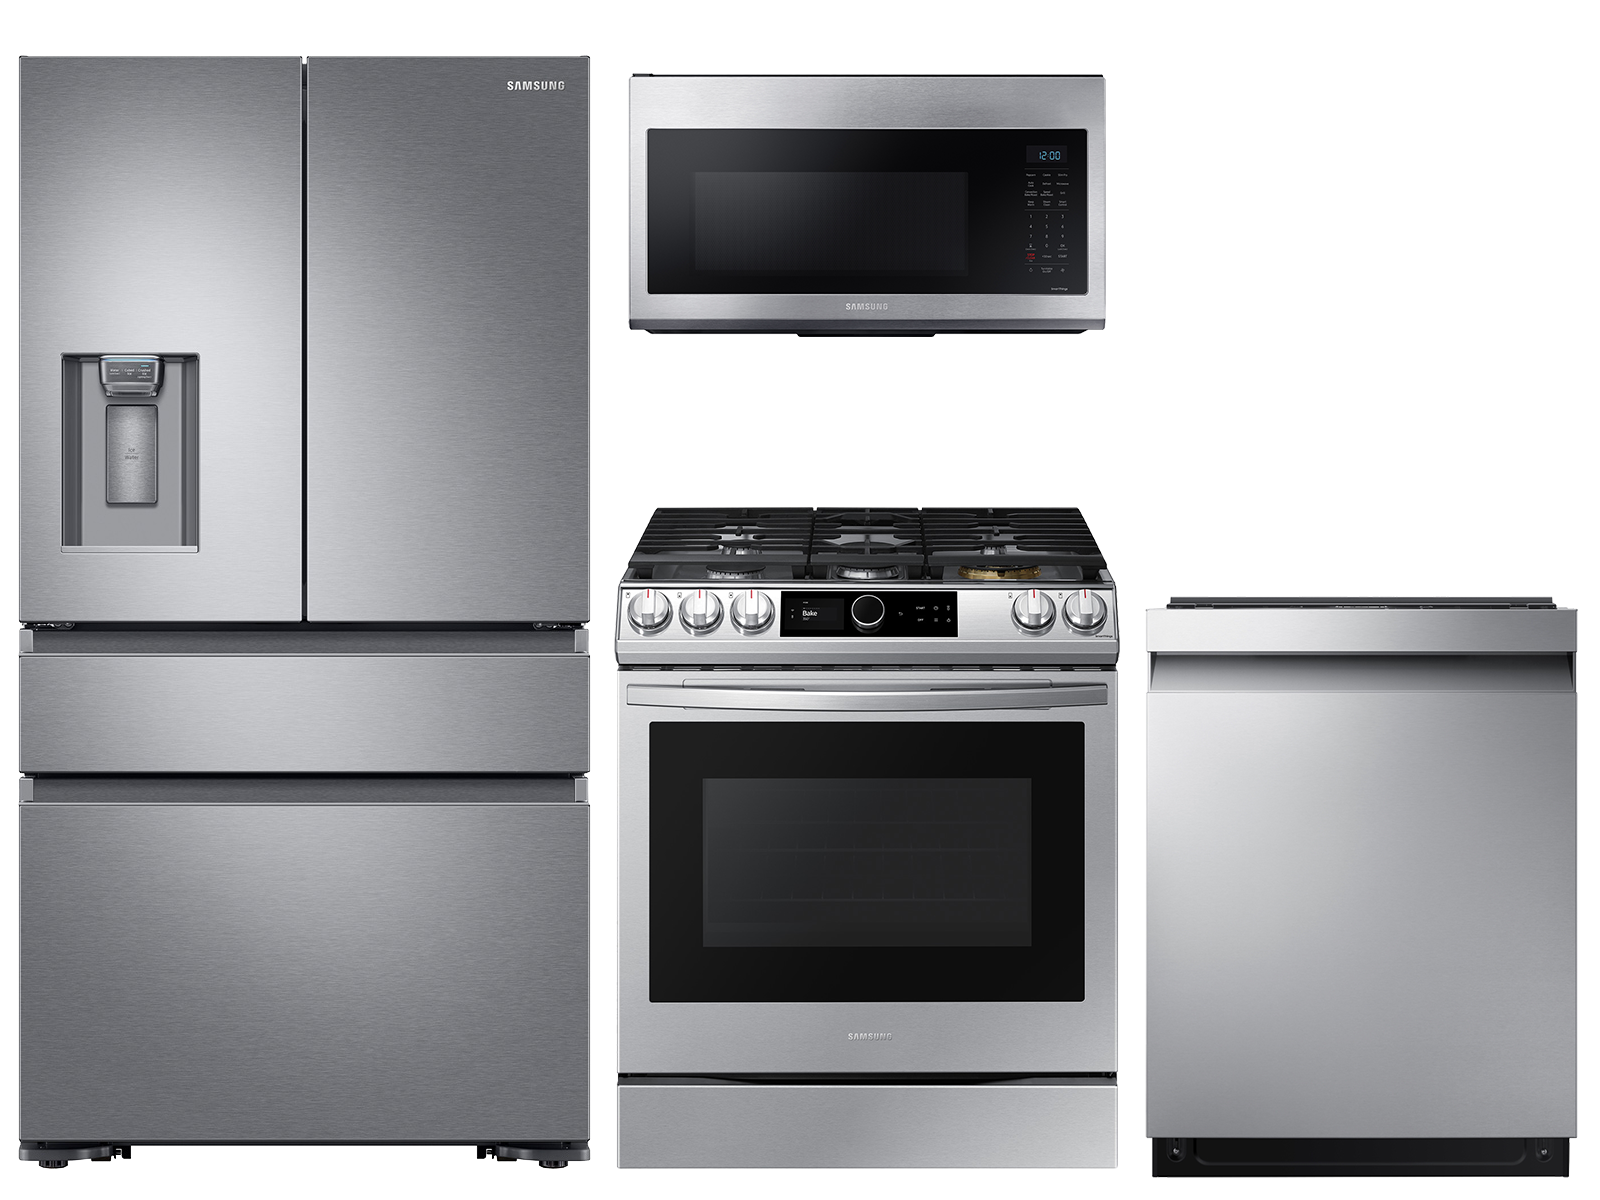 23 cu. ft. counter depth 4-door refrigerator, gas range, microwave and 42 dBA dishwasher package